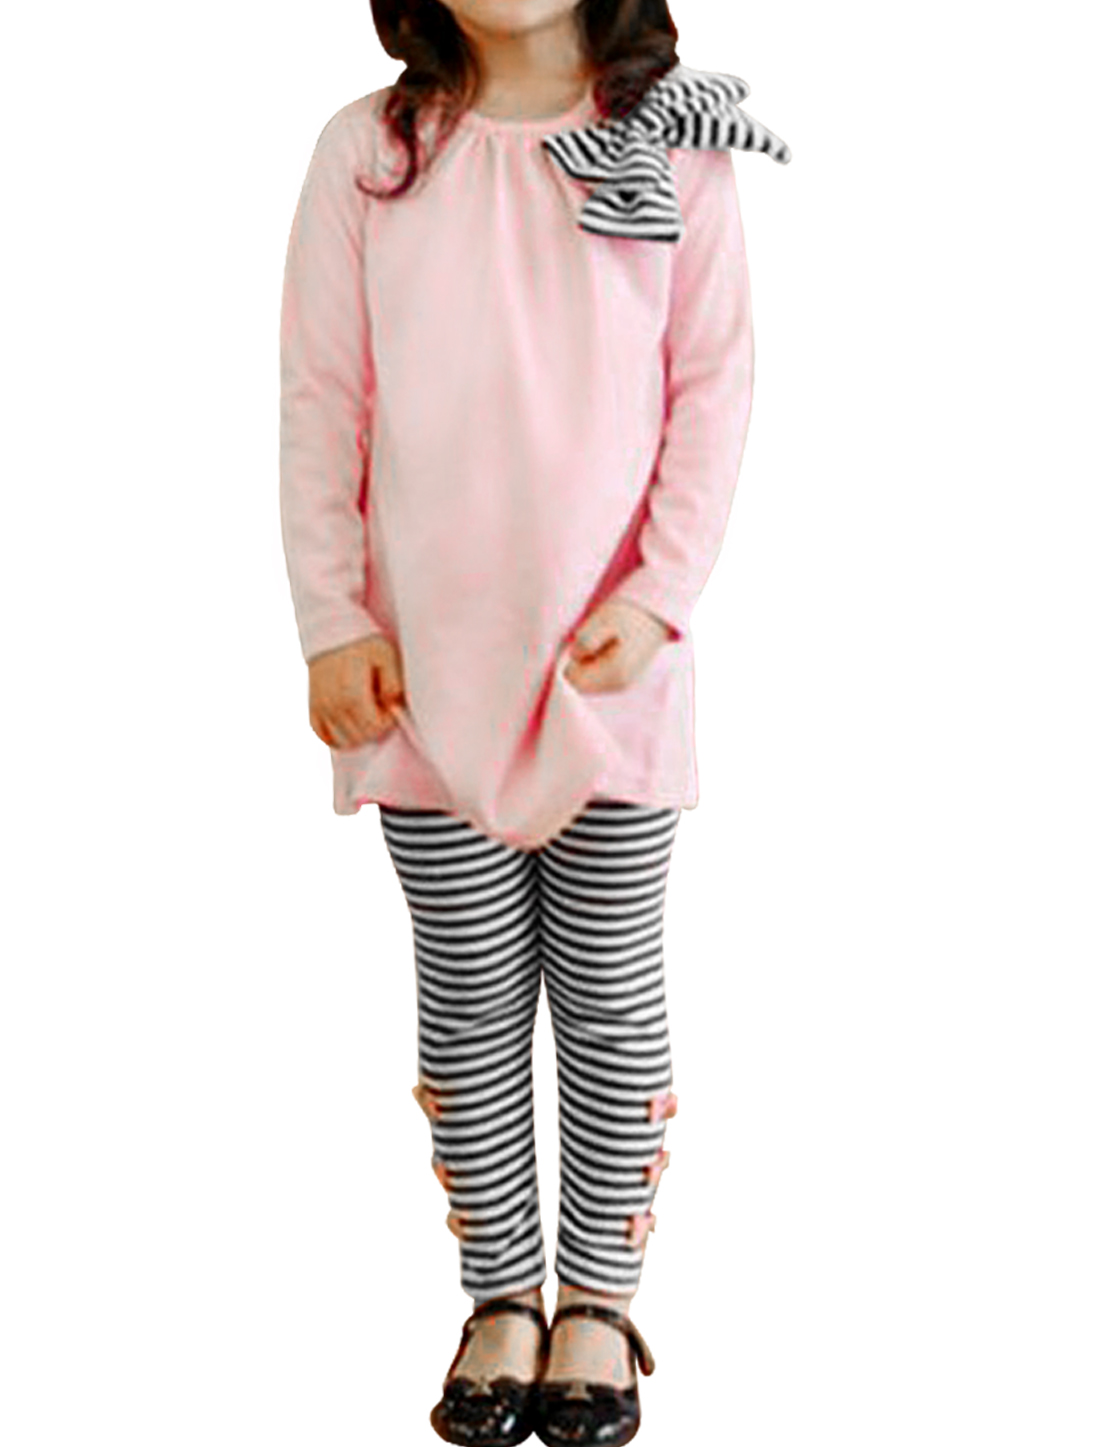 Girls Long Sleeve Shirt & Elastic Waist Pants Pink Black 2T